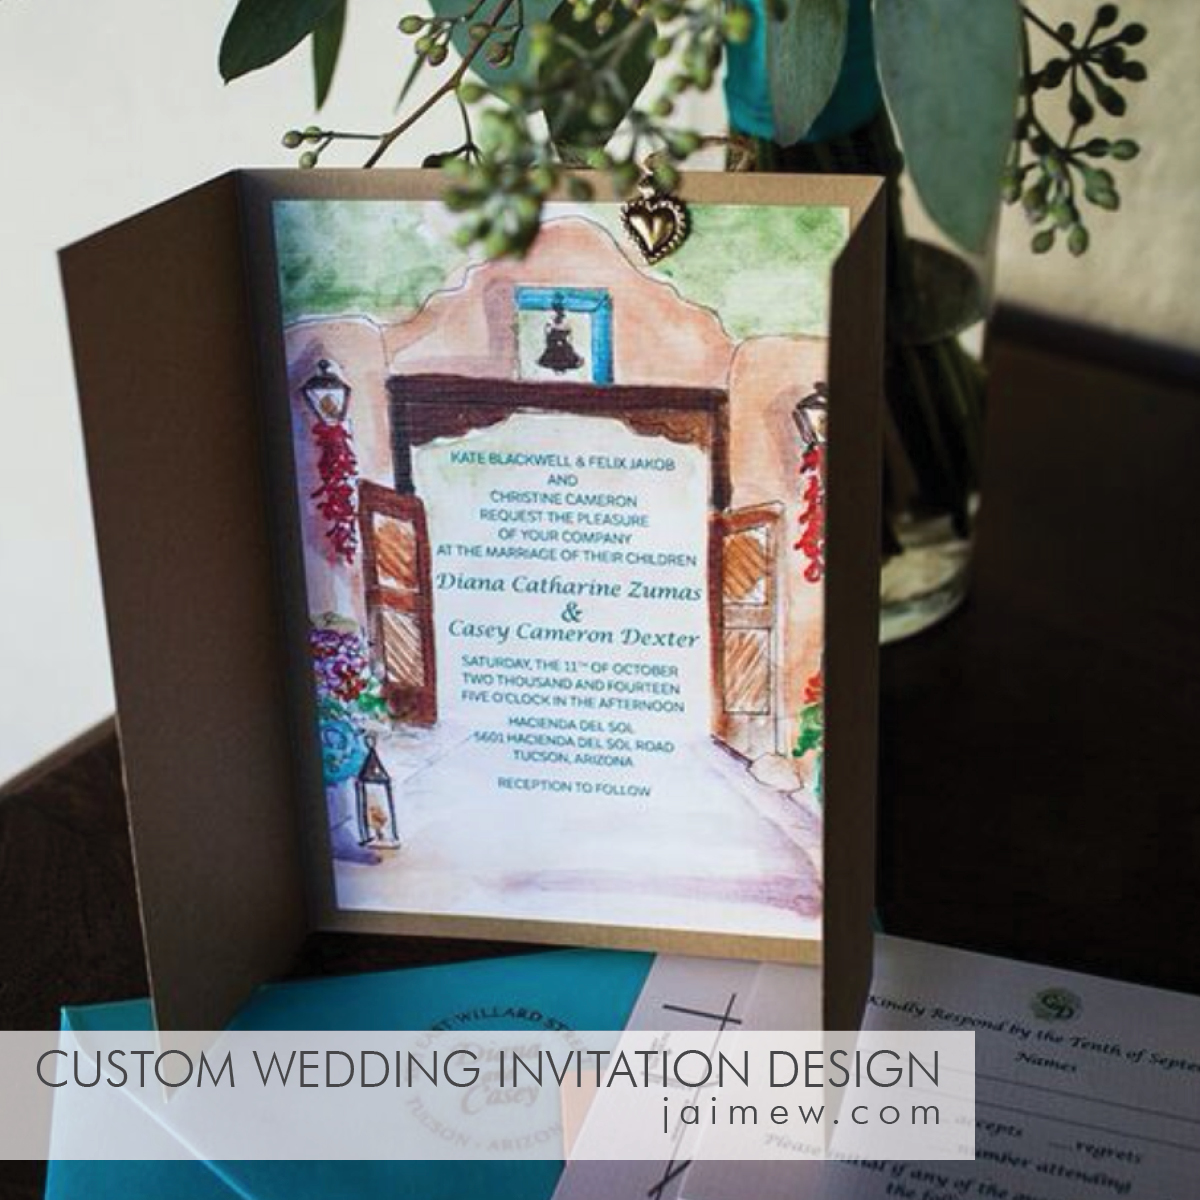 custom wedding invitation and stationery design